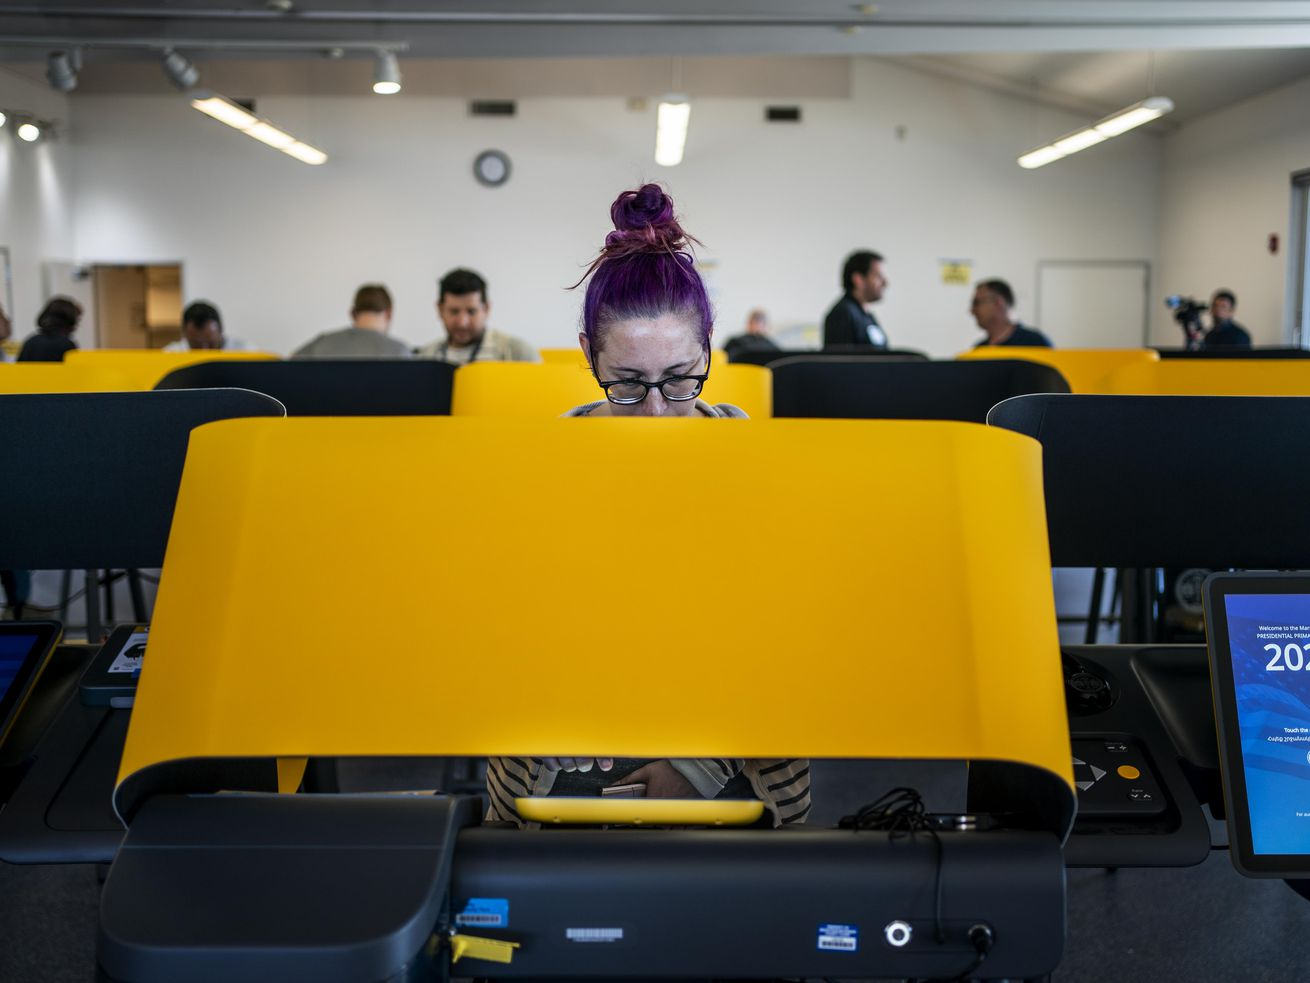 A woman behind a yellow privacy screen looks down intently as she makes her selections. behind her, people walk by in a room full of yellow booths.